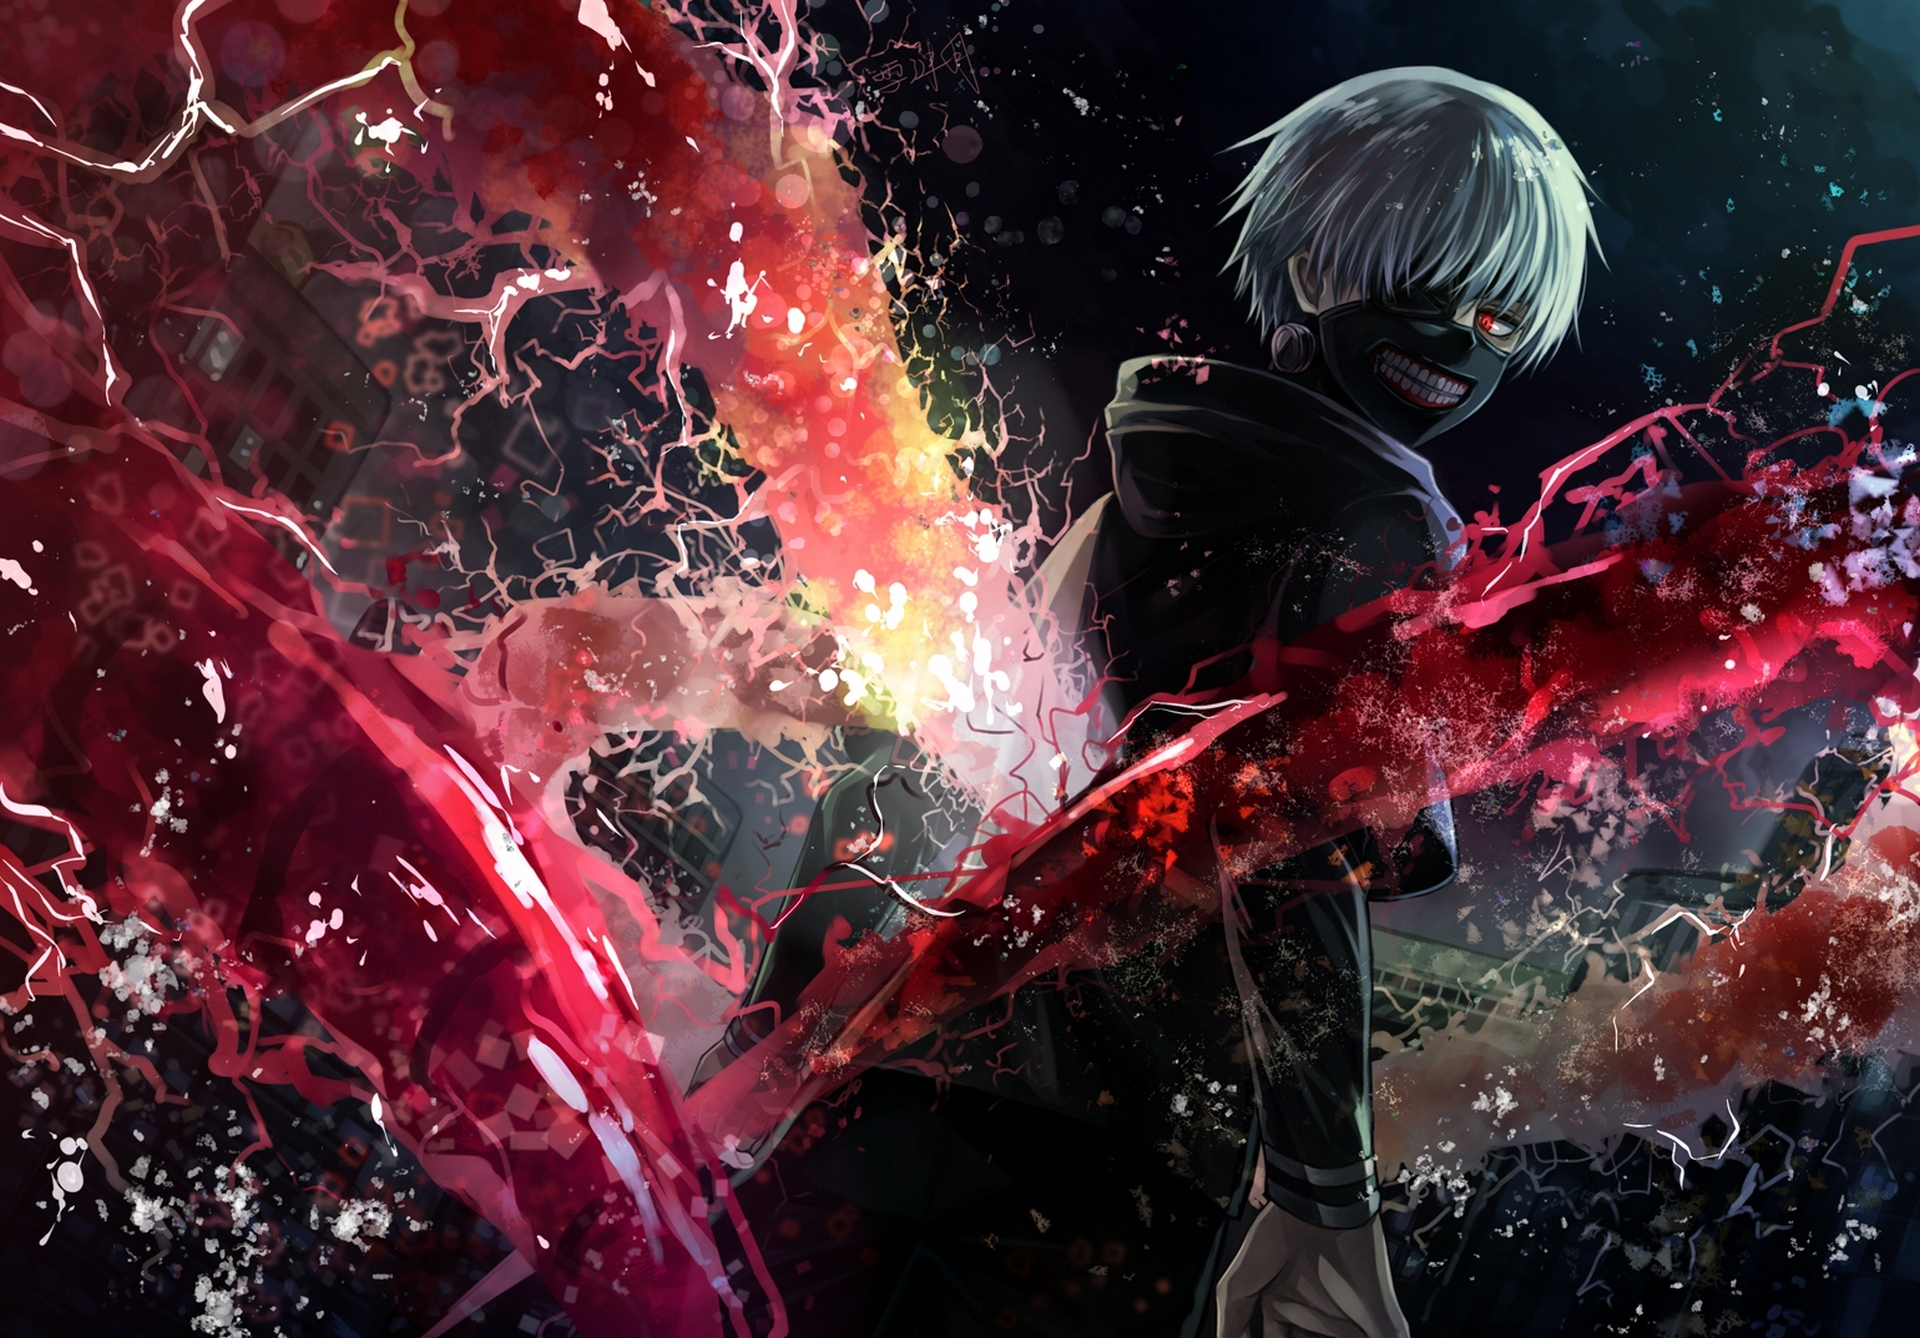 611 Tokyo Ghoul HD Wallpapers | Backgrounds - Wallpaper Abyss